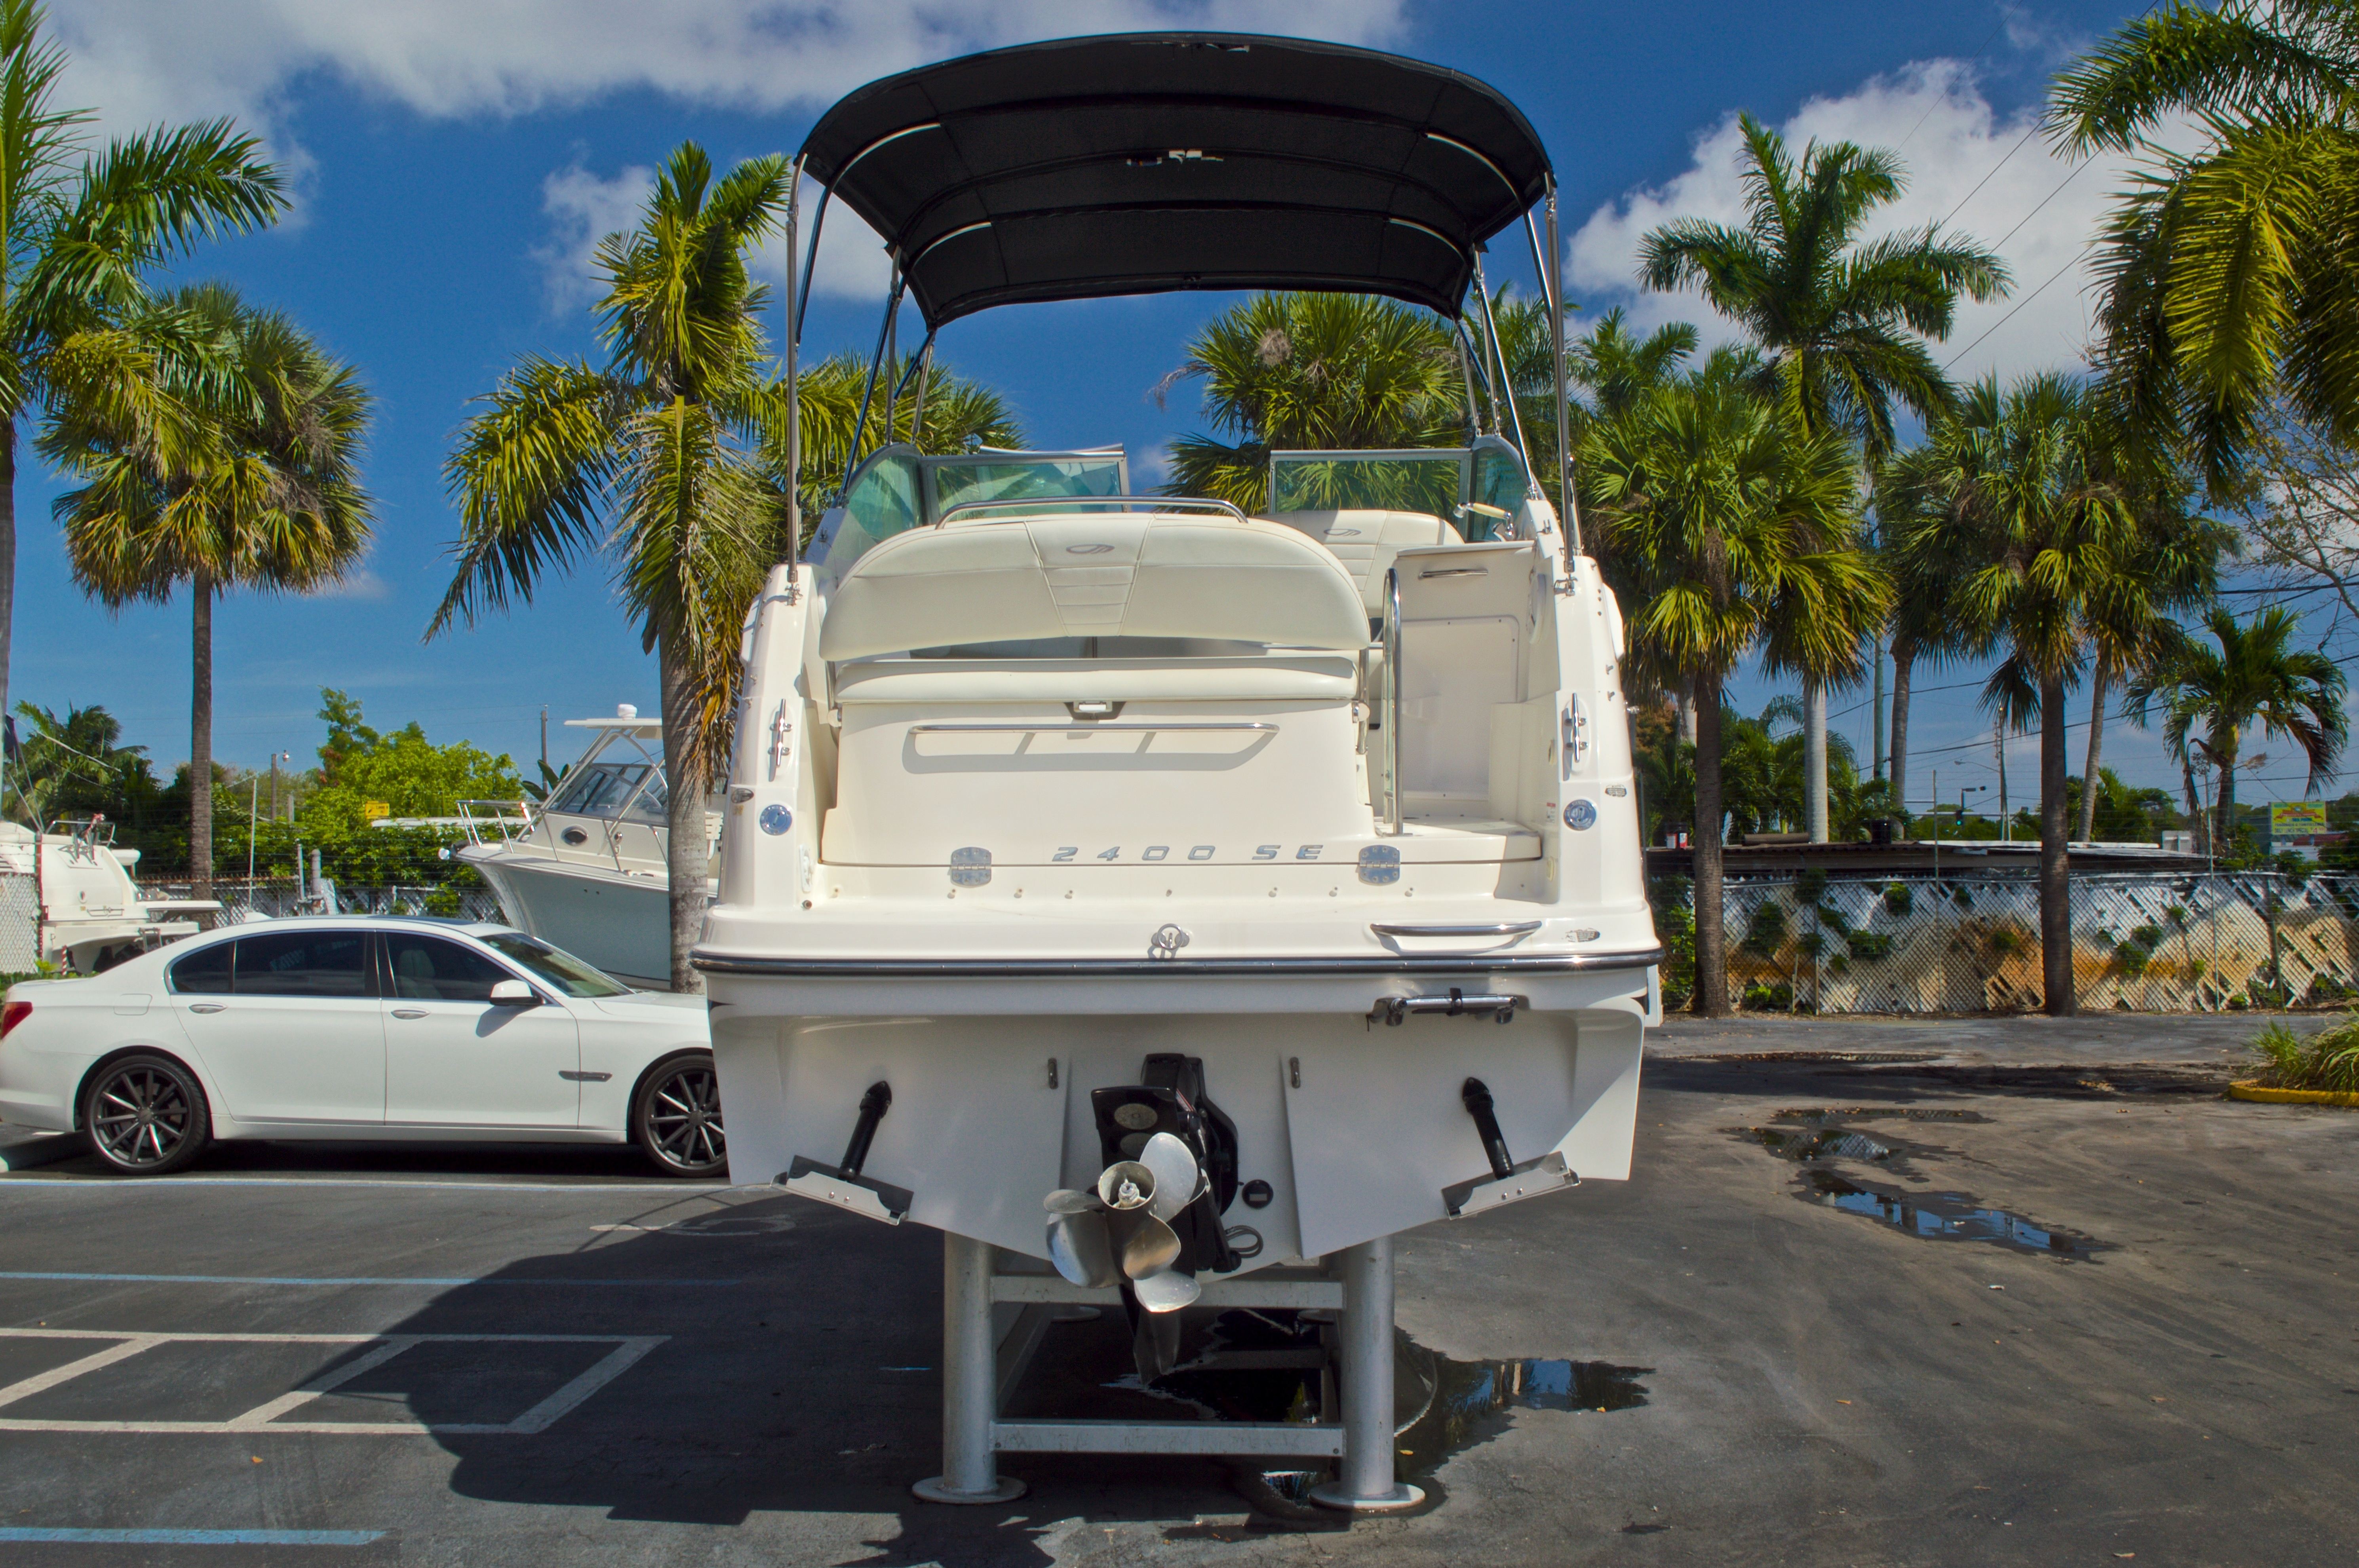 Thumbnail 7 for Used 2007 Maxum 2400 SE boat for sale in West Palm Beach, FL